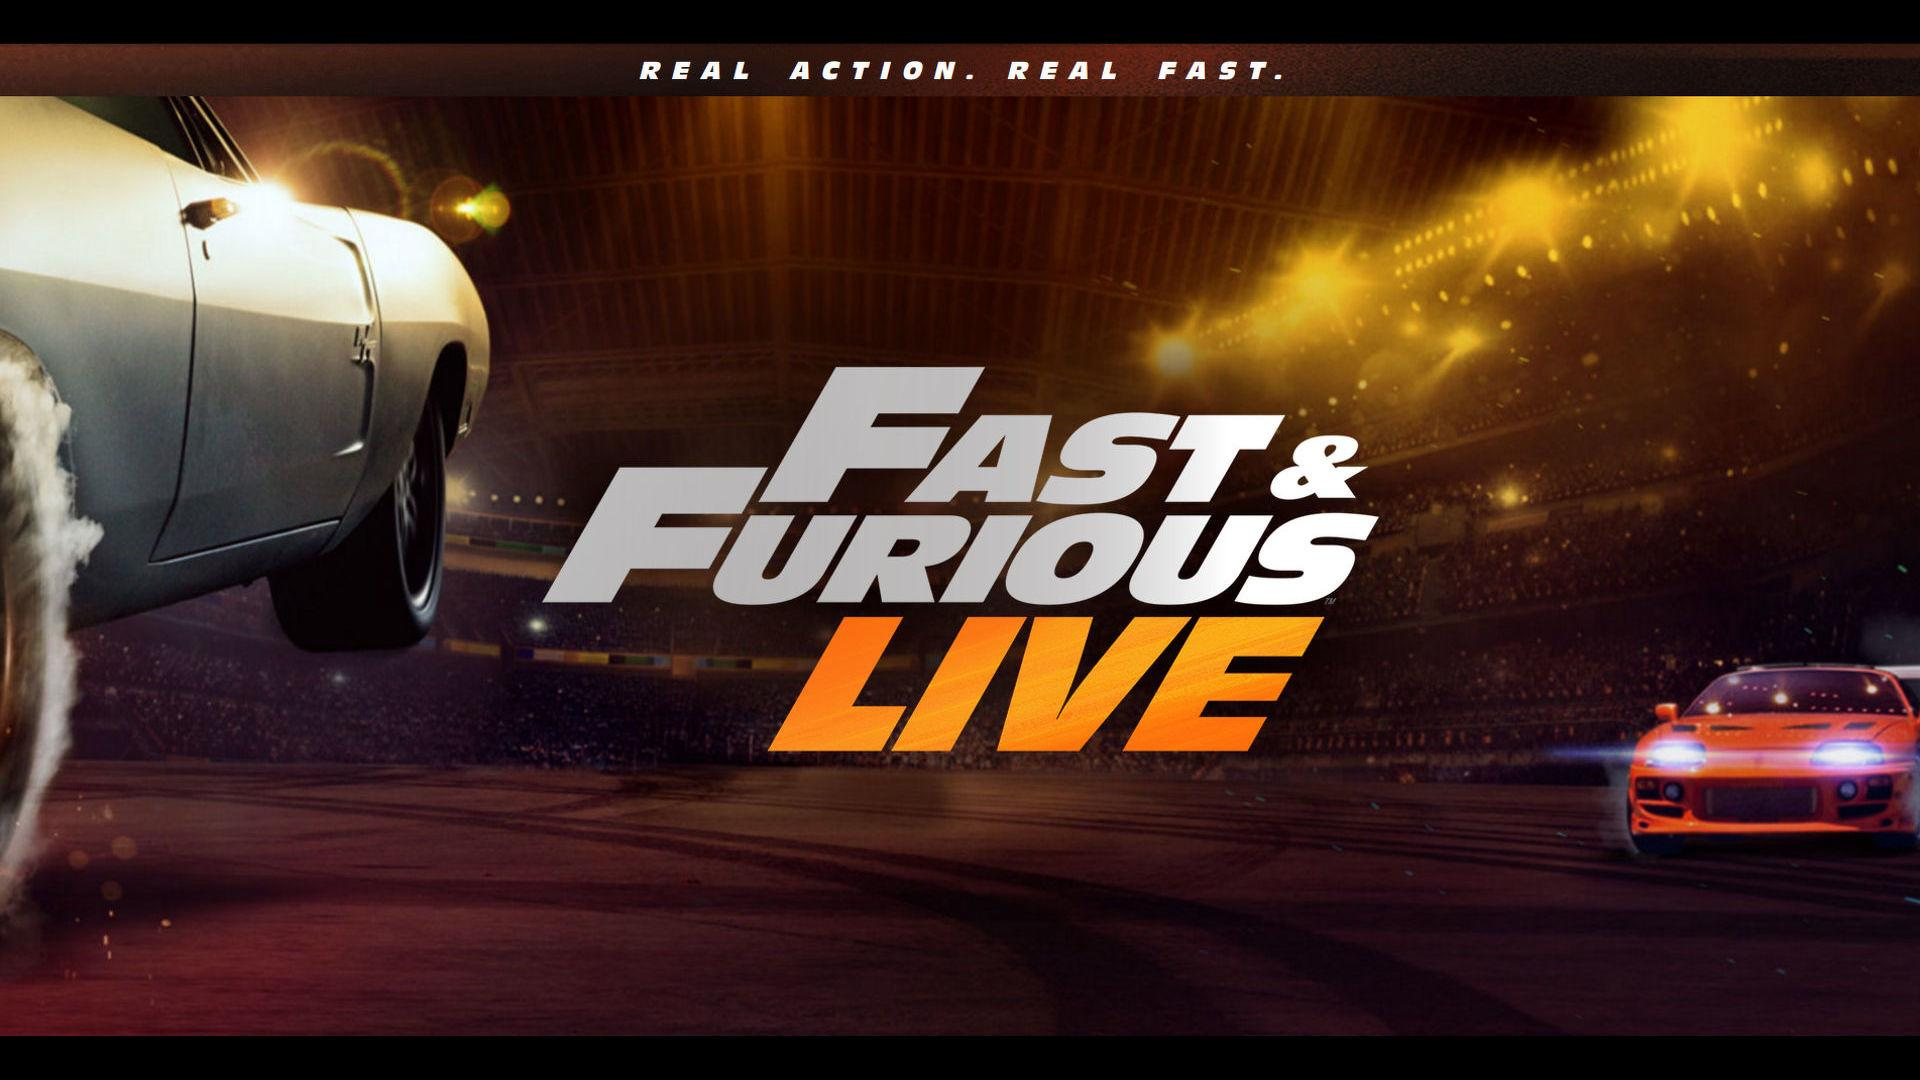 Fast Furious Live Show With Vin Diesel Hits Arenas In January